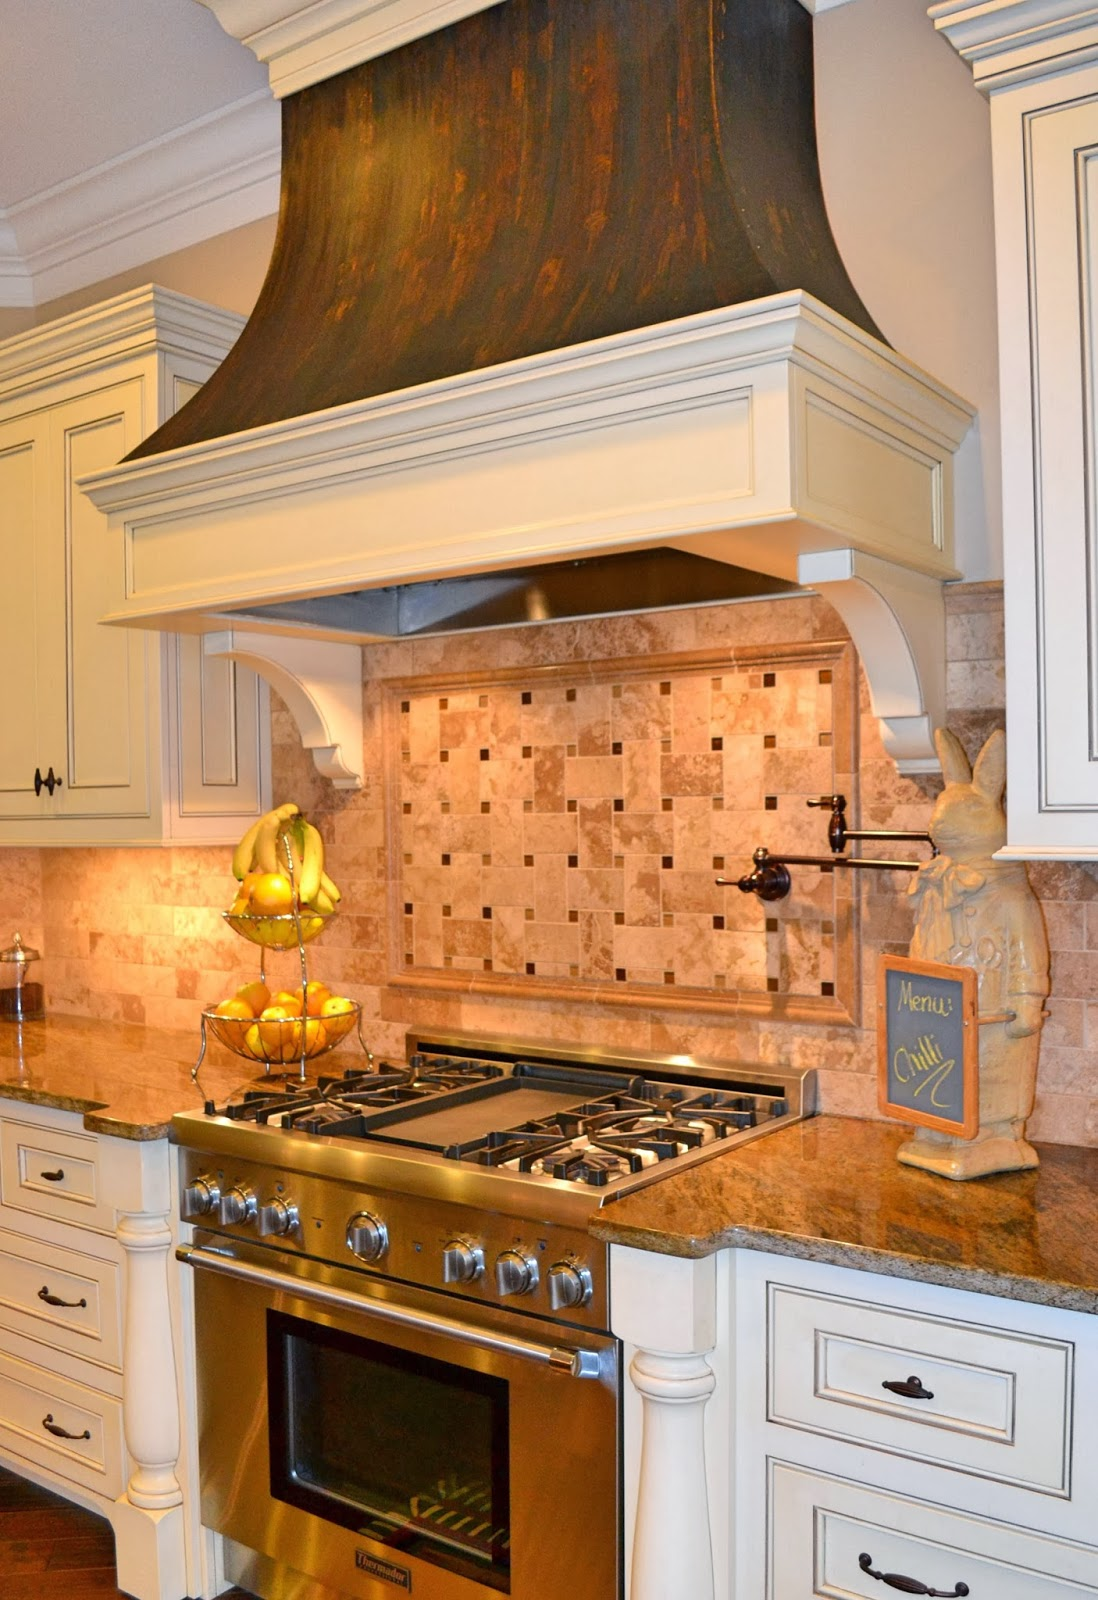 copper-range-hood-dacor